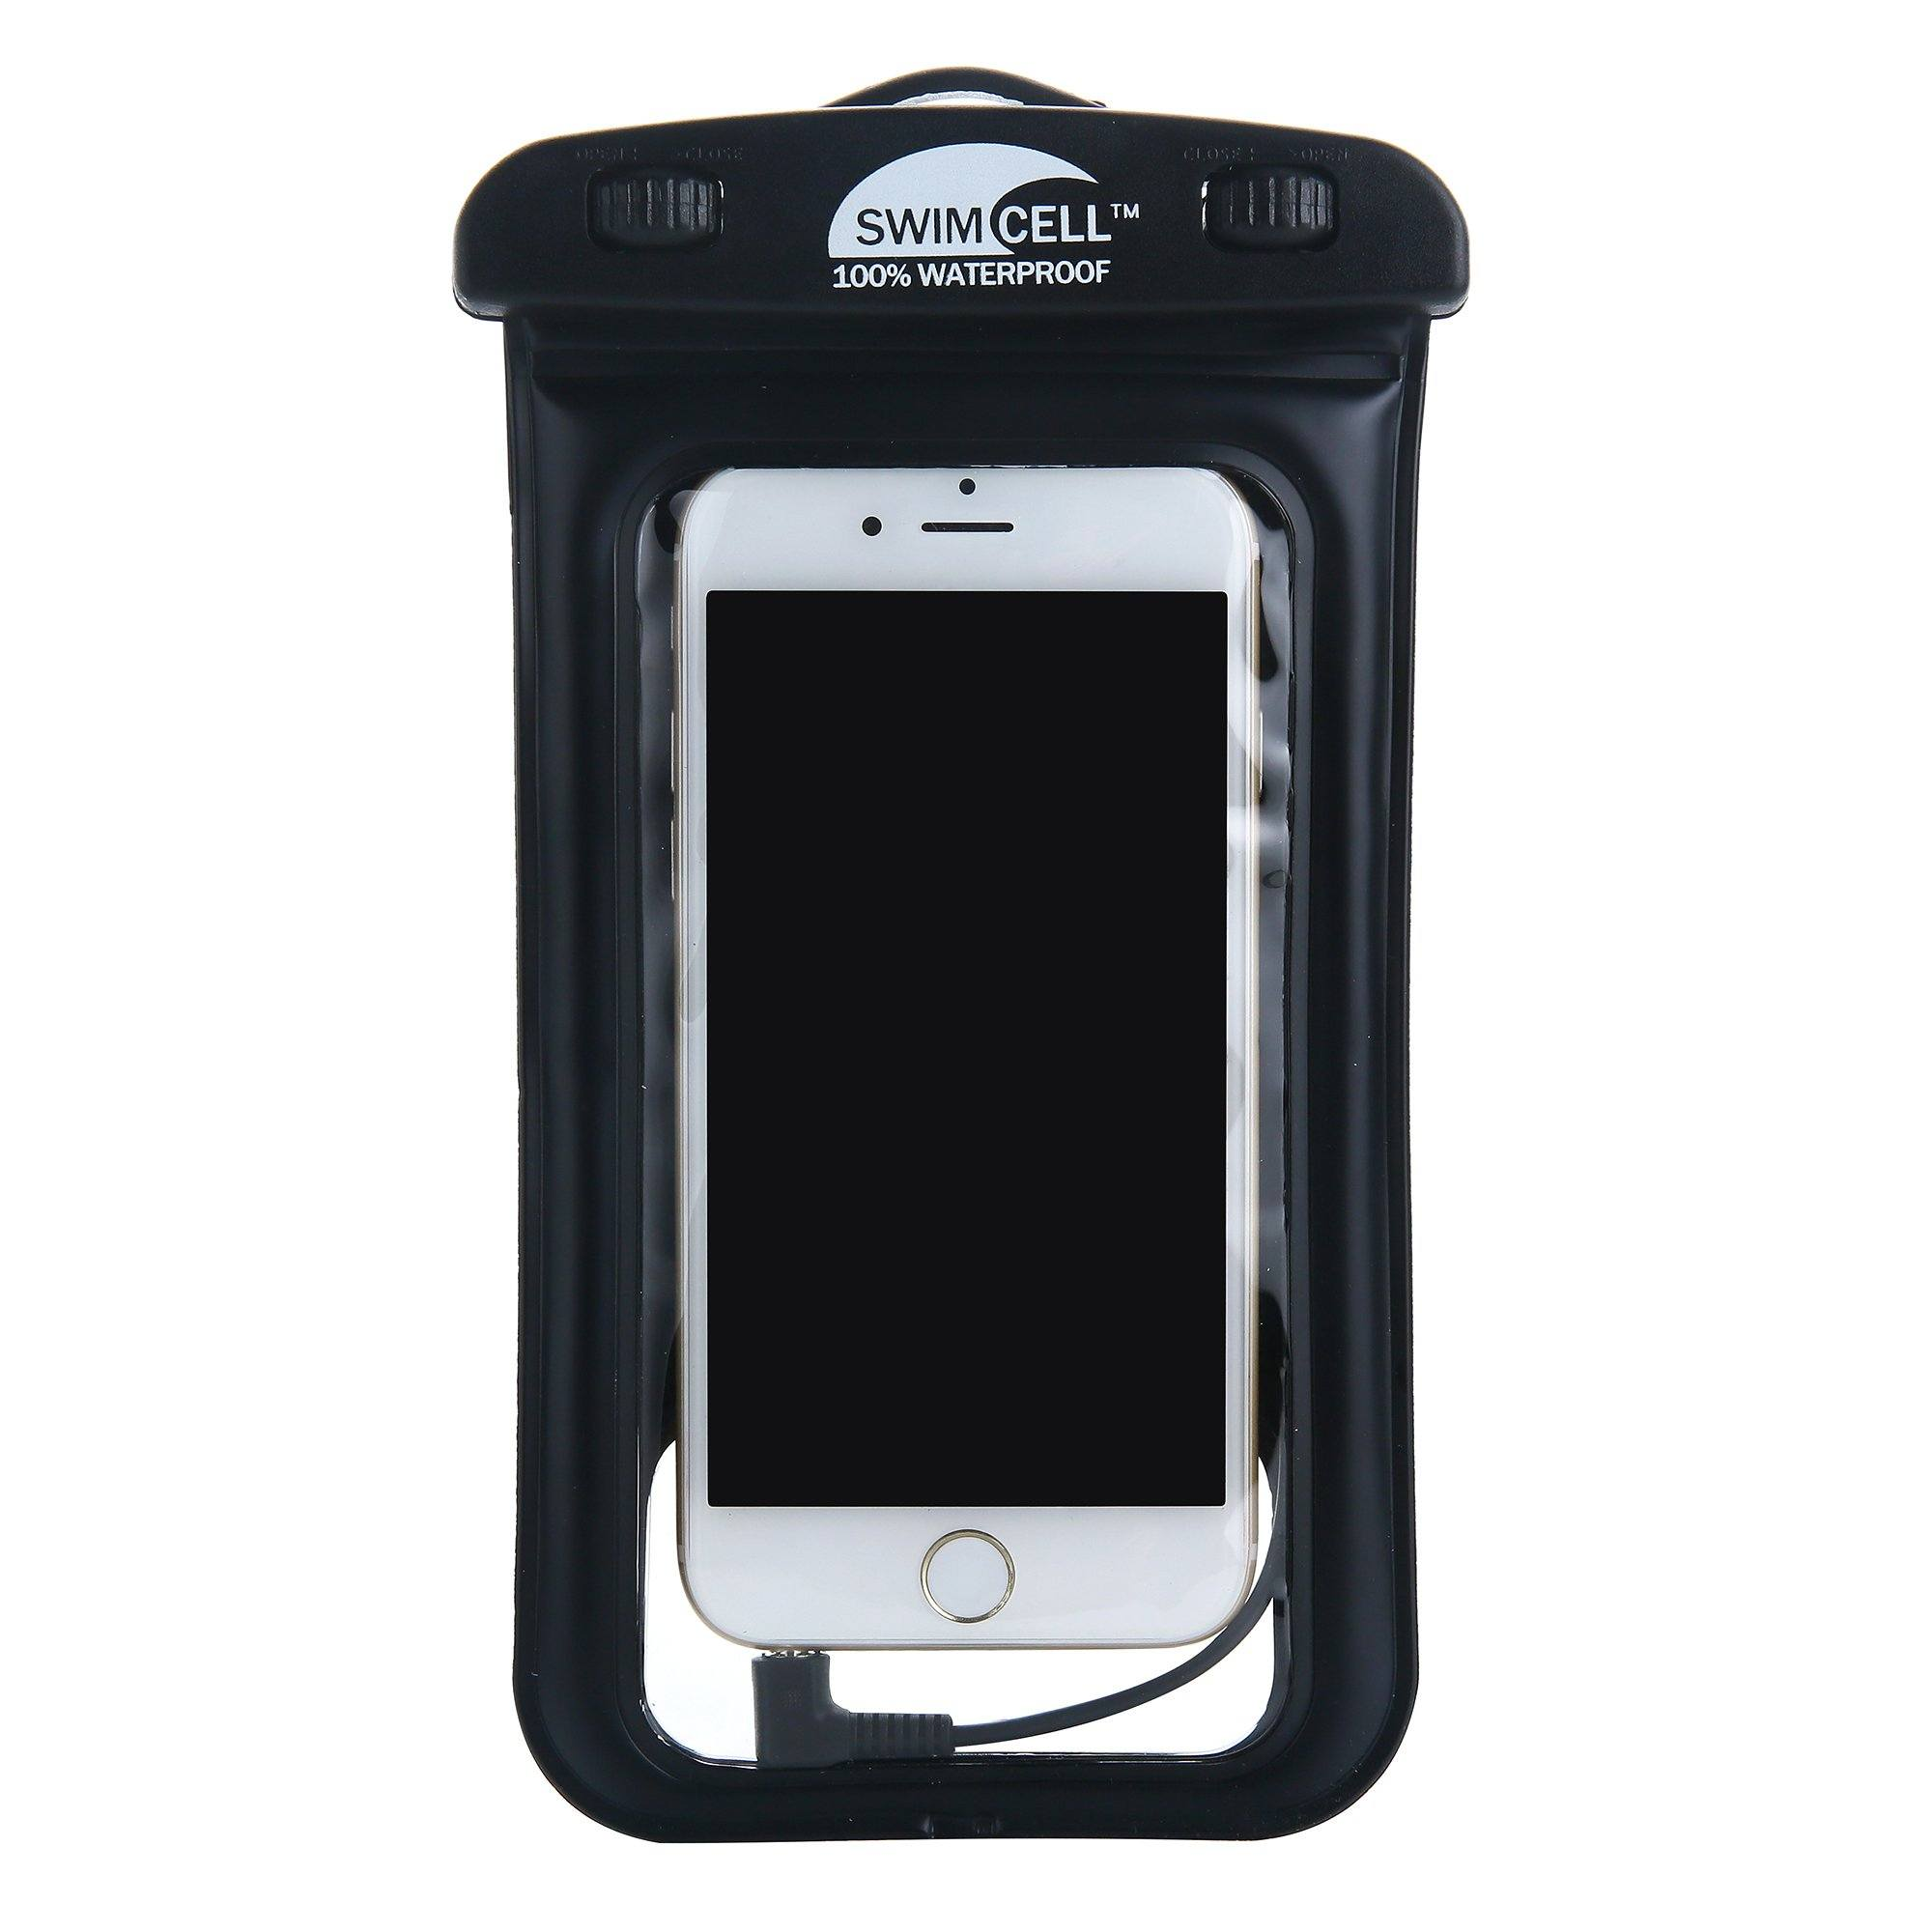 on sale cfac9 e9baa SwimCell 100% Waterproof Phone Case With Armband - SwimCell ...